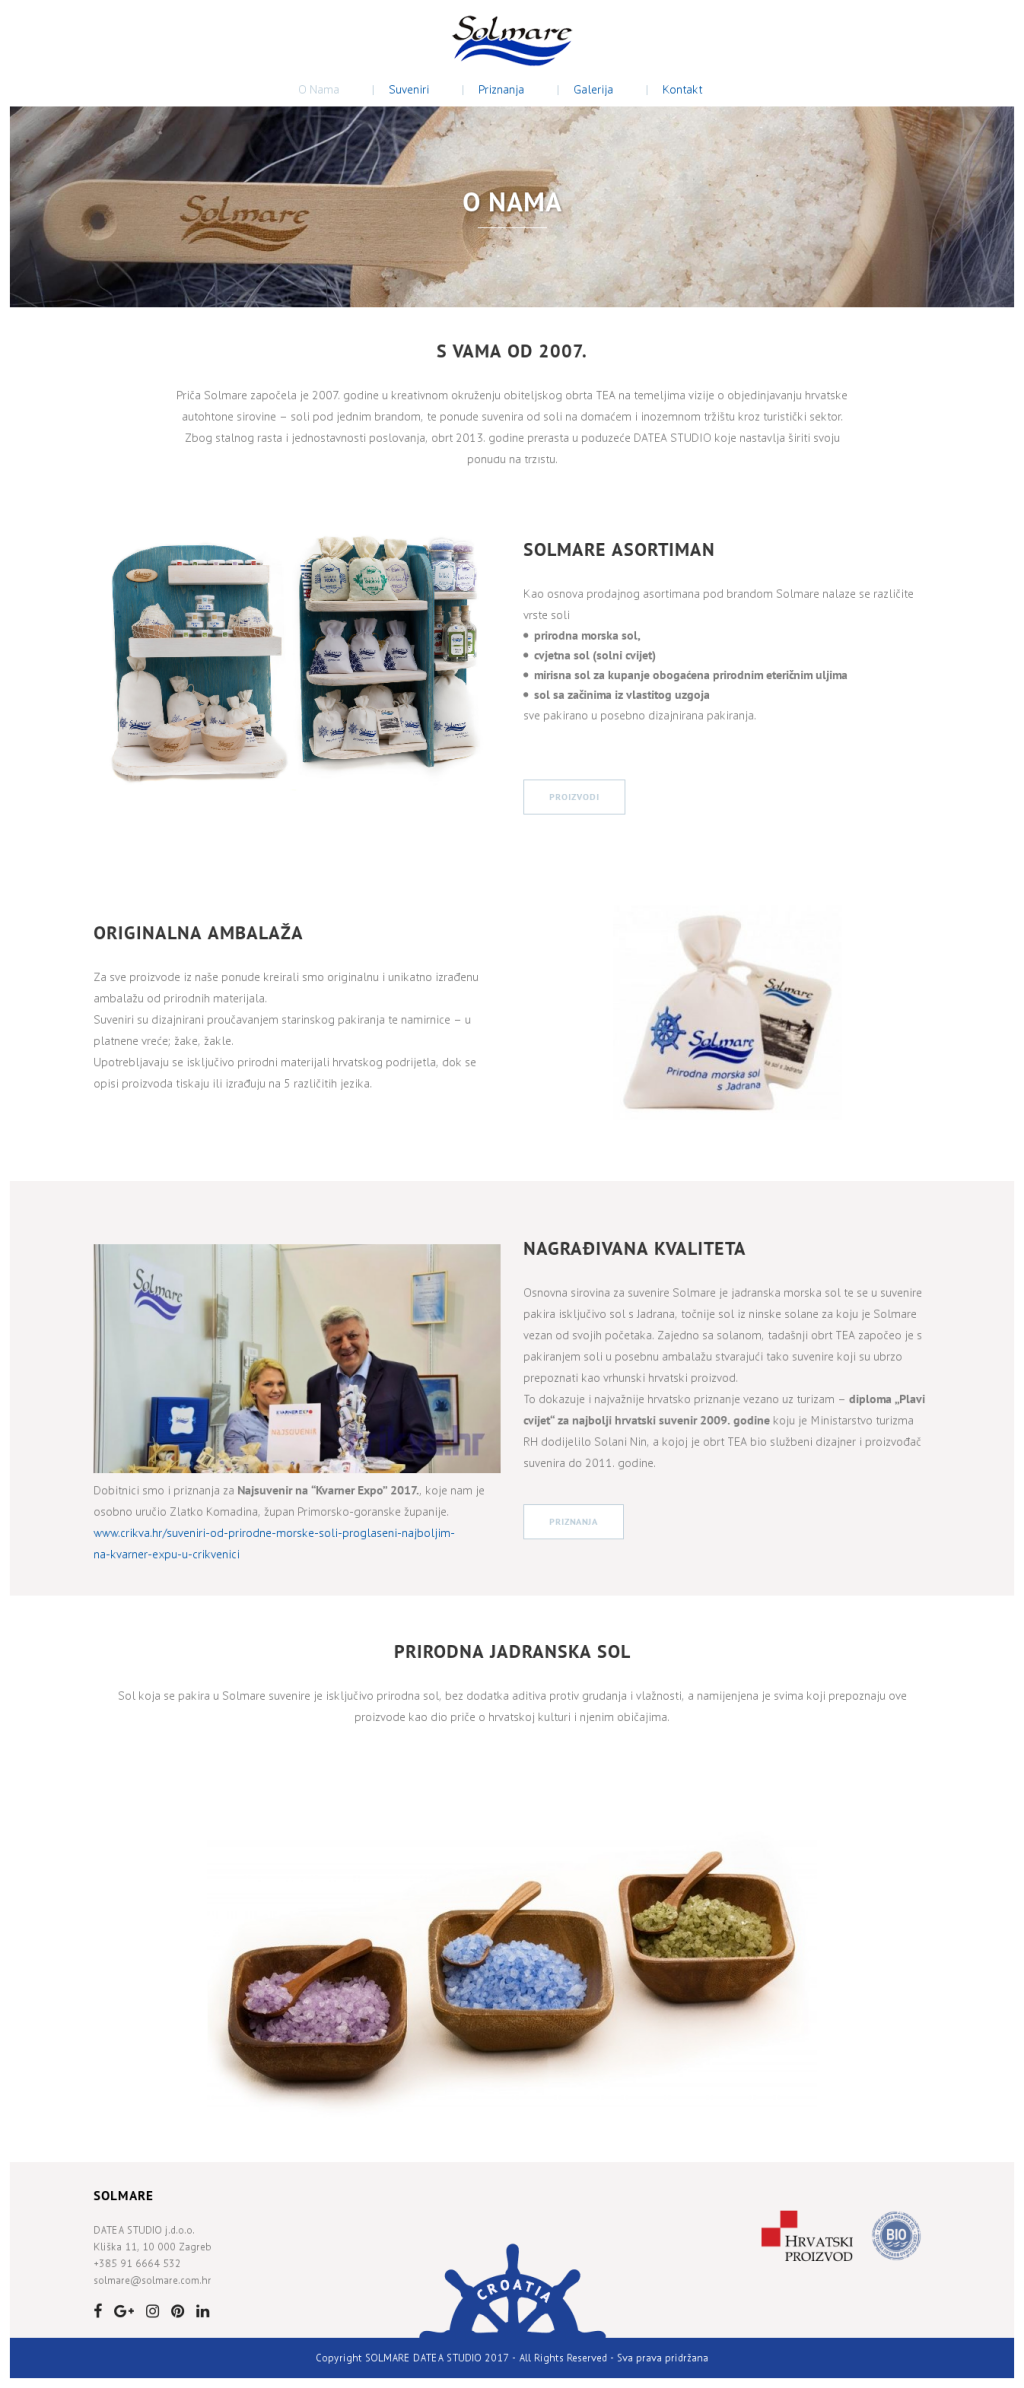 Solmare web site with product catalog